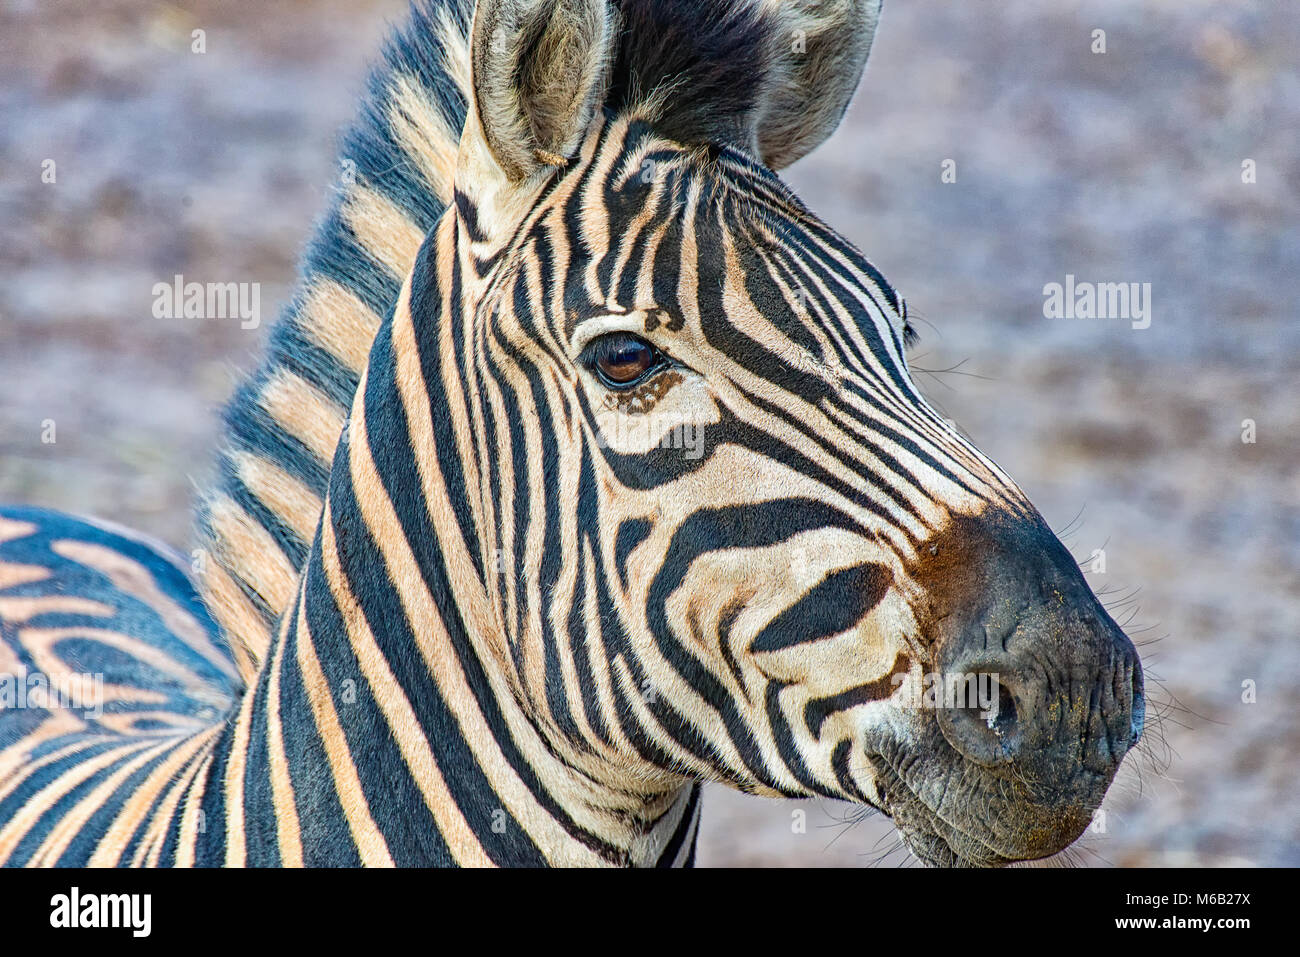 Head of a zebra - Stock Image